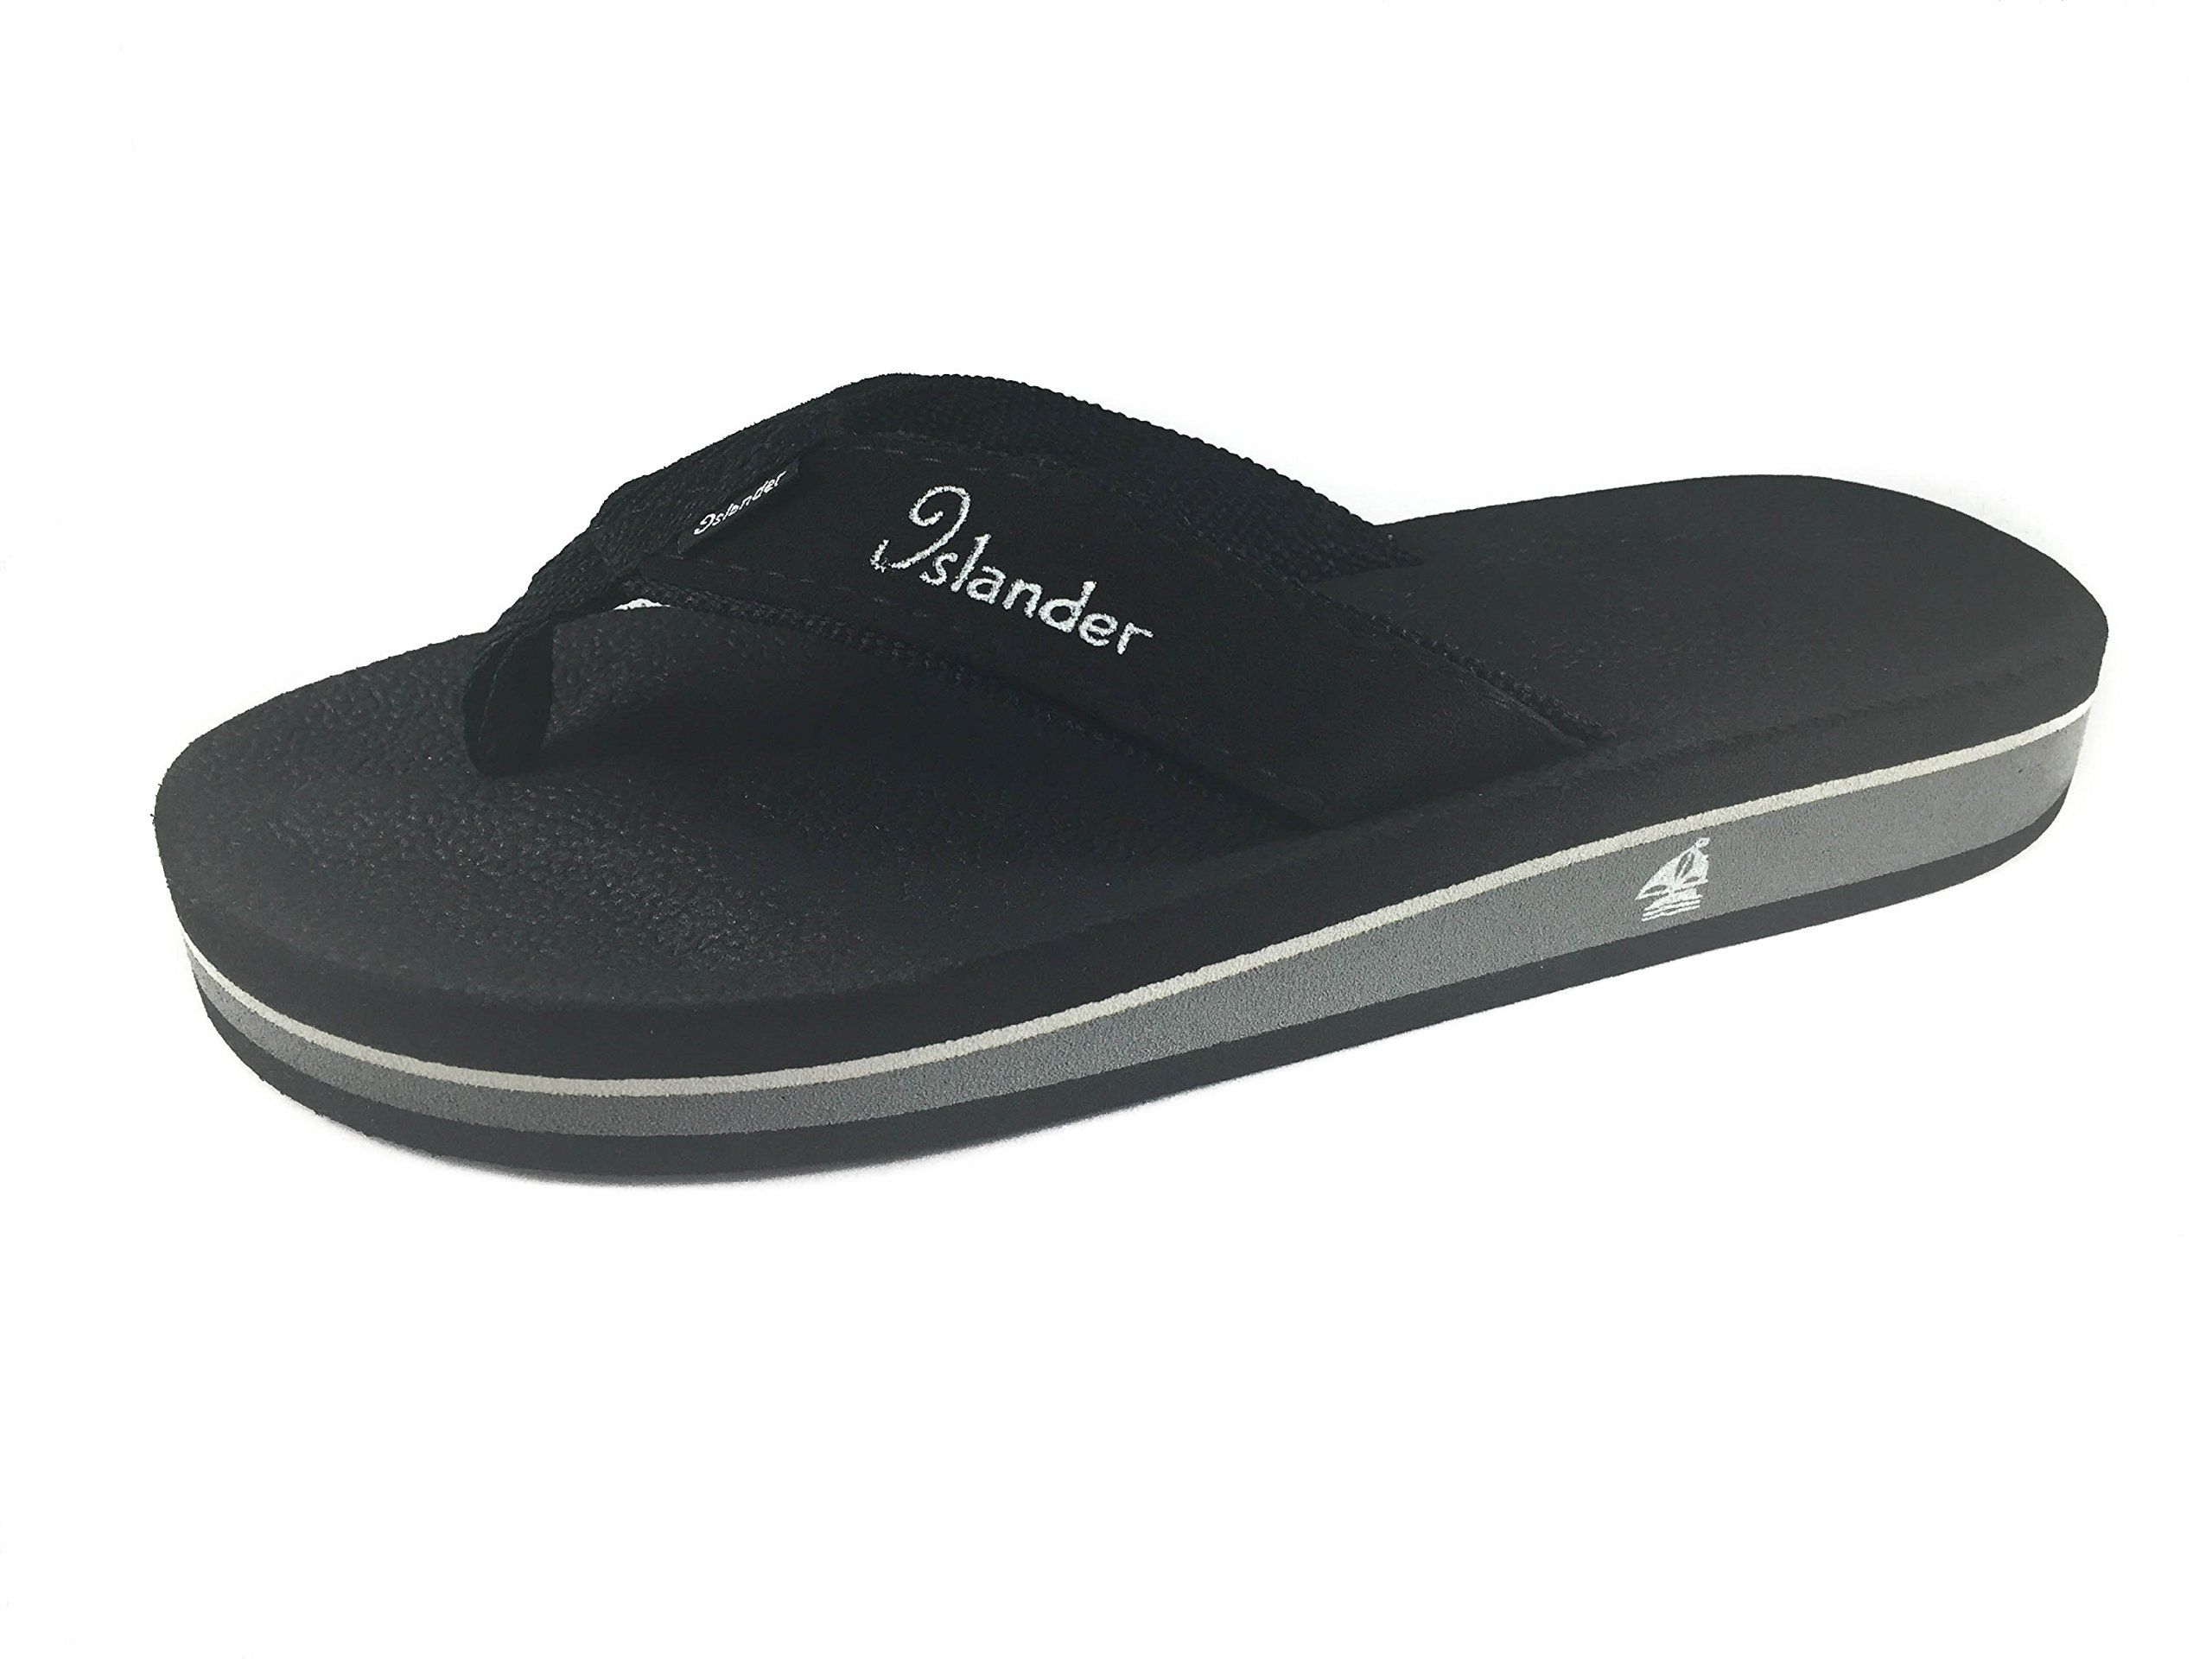 53c818c1e000de Philippines Islander Men and Women s Flip Flop Sandal (7